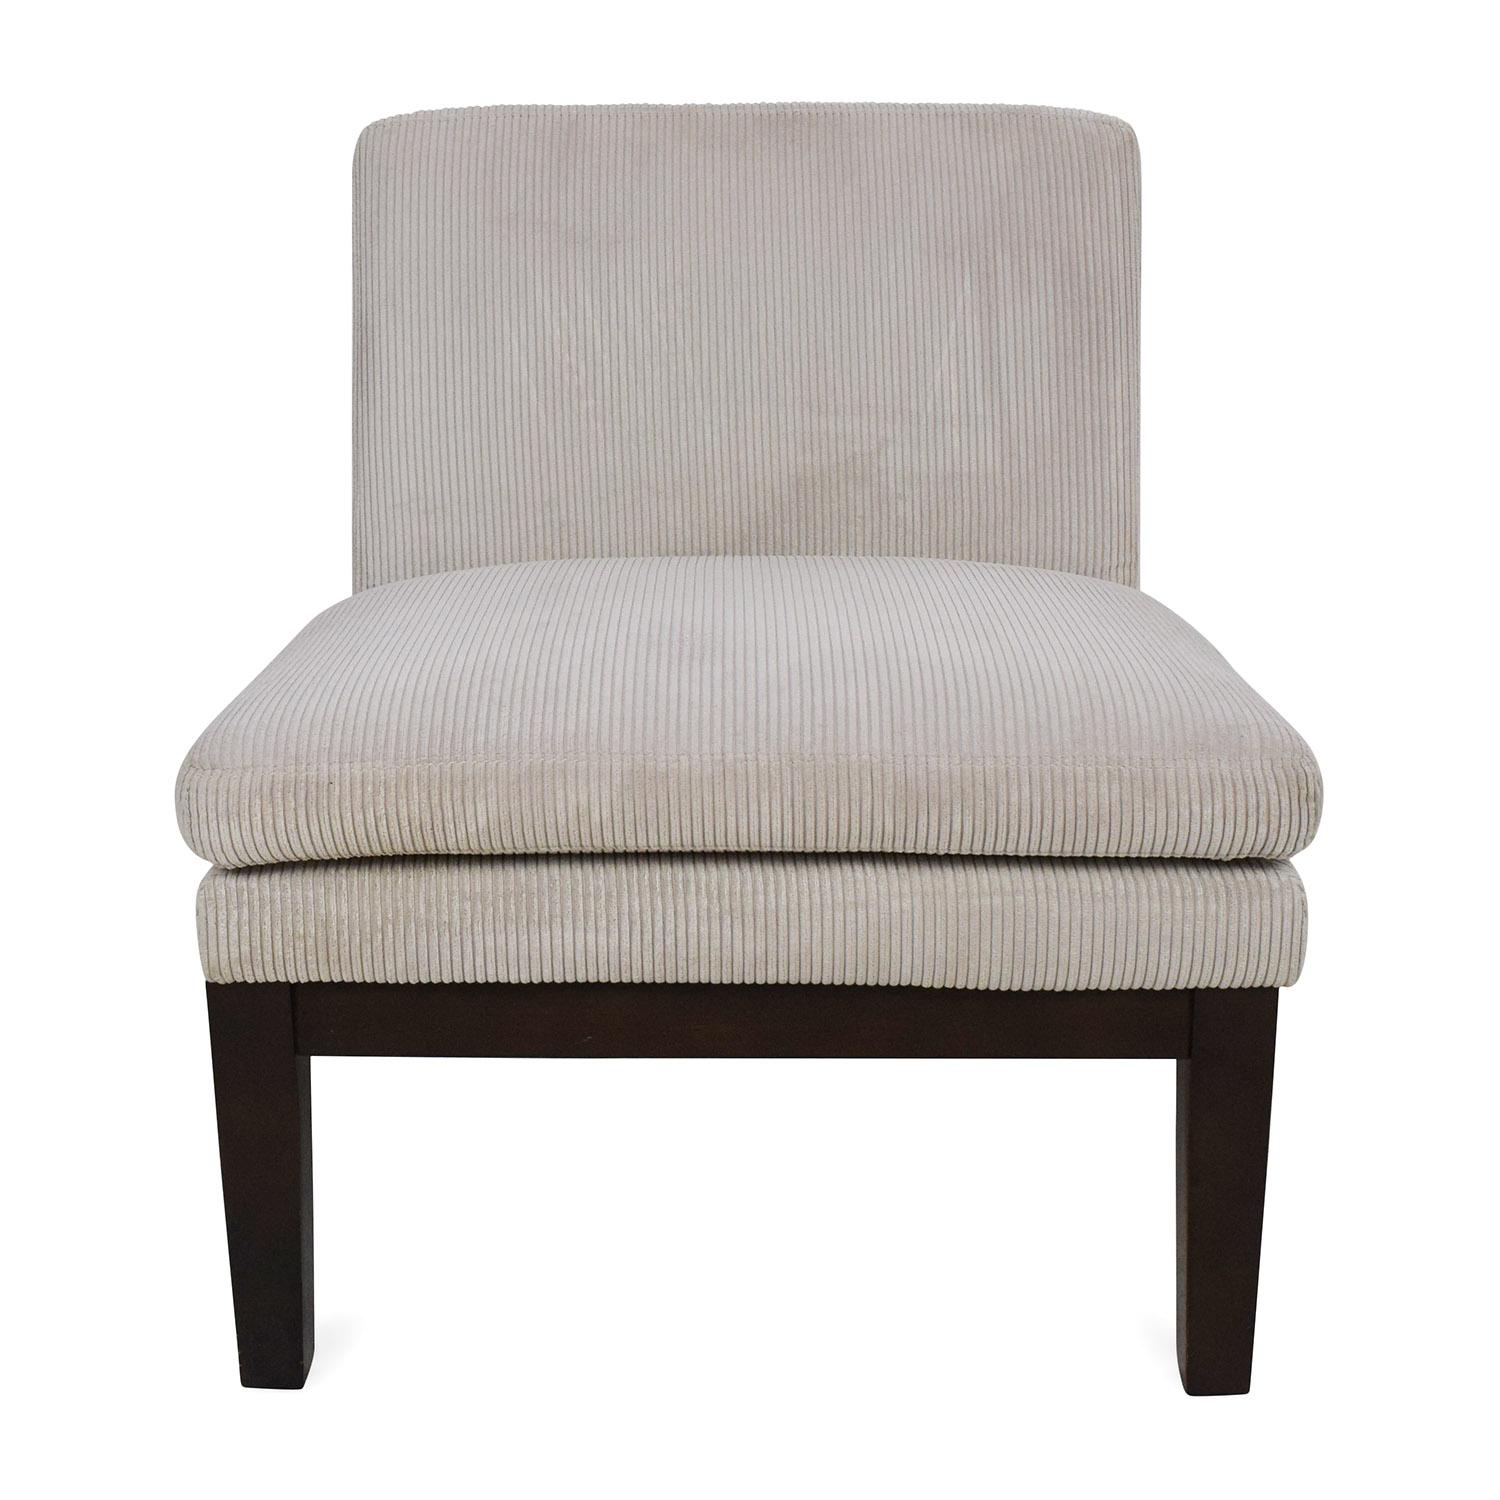 West Elm Corduroy Slipper Chair